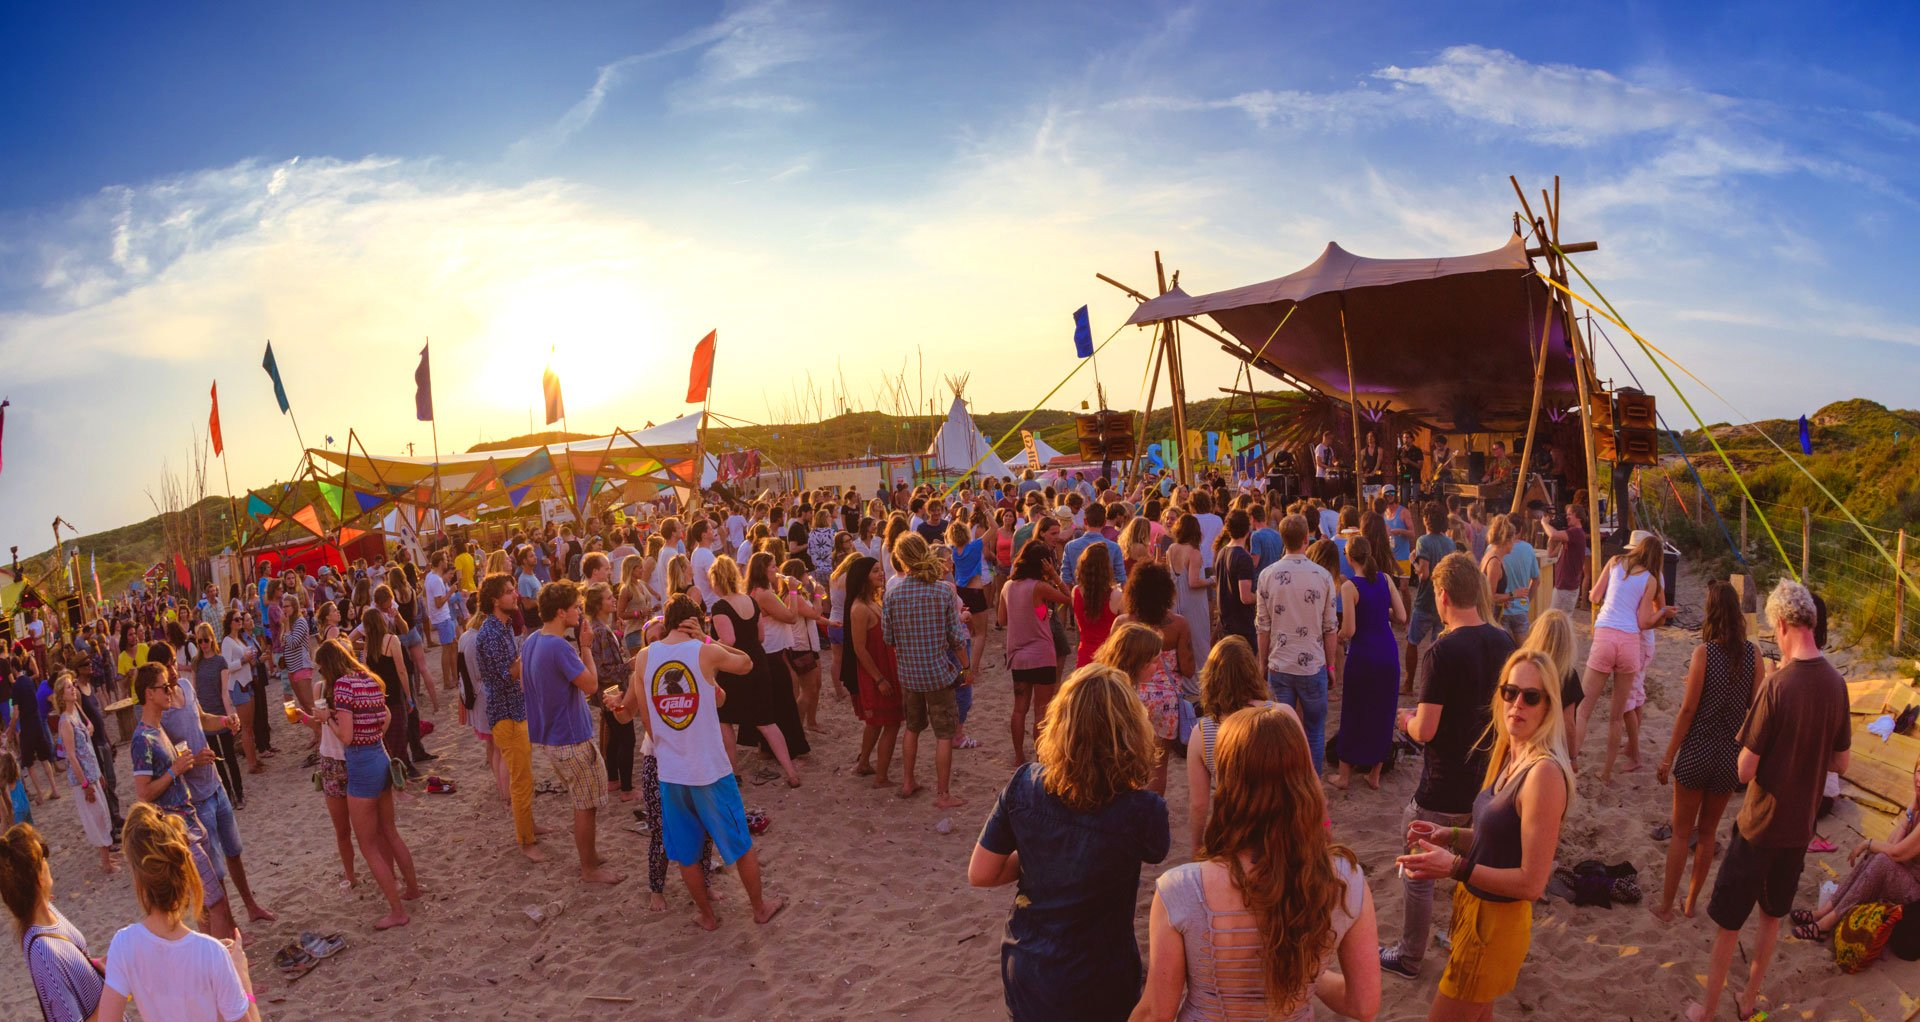 Surfana Festival in The Netherlands 2020 - Best Time